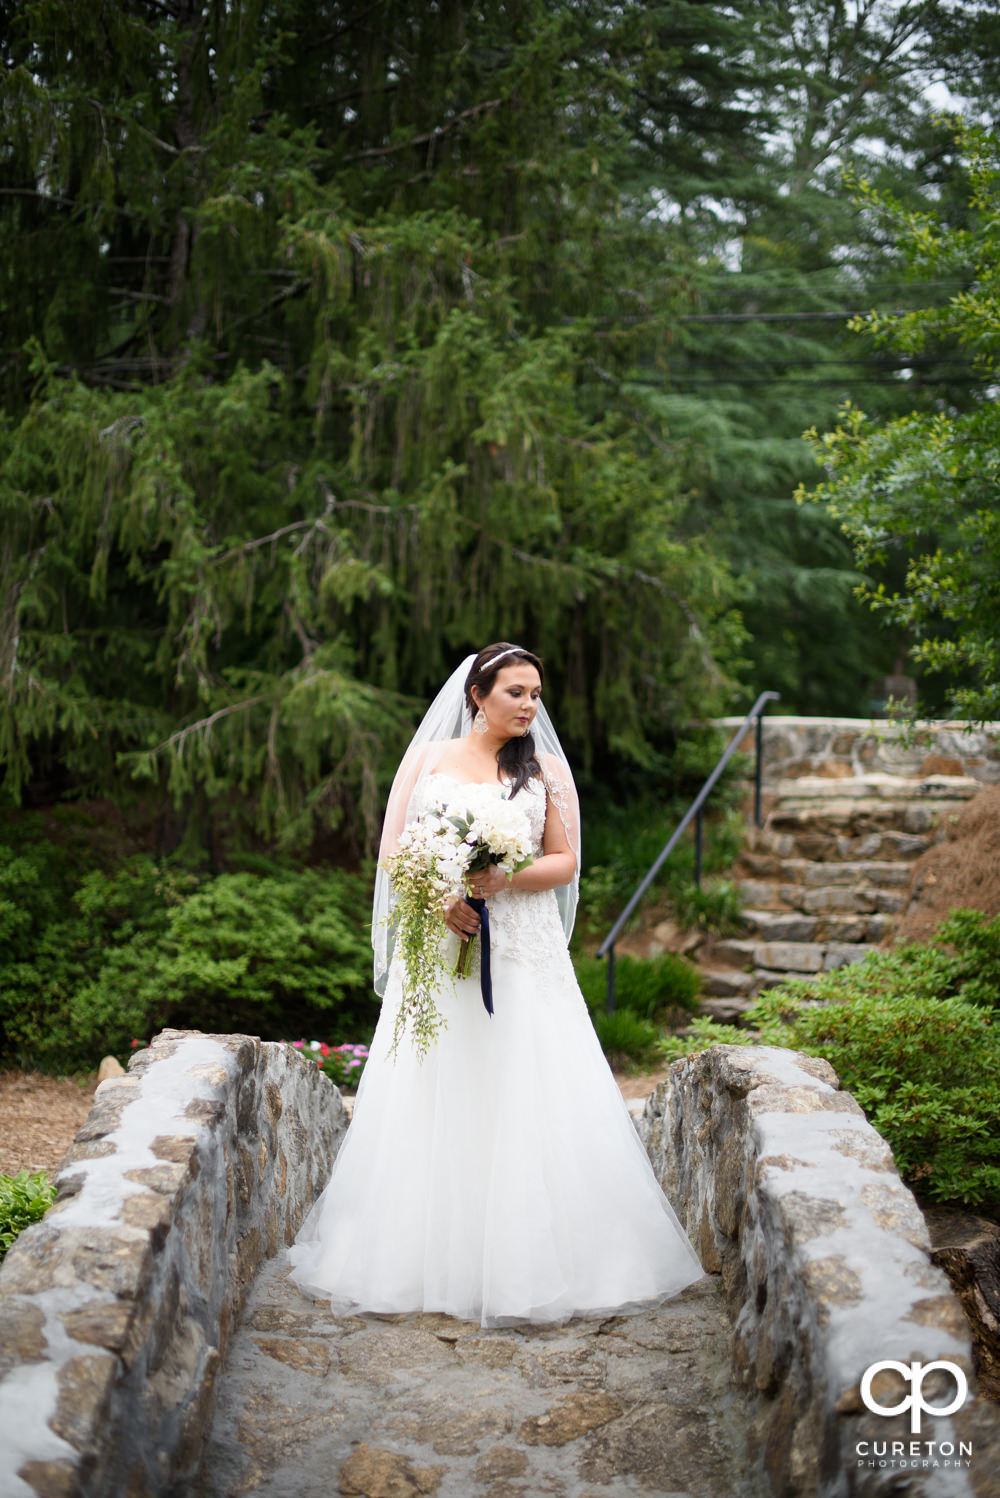 Bride on the stone bridge during her bridal portrait session in downtown Greenville.